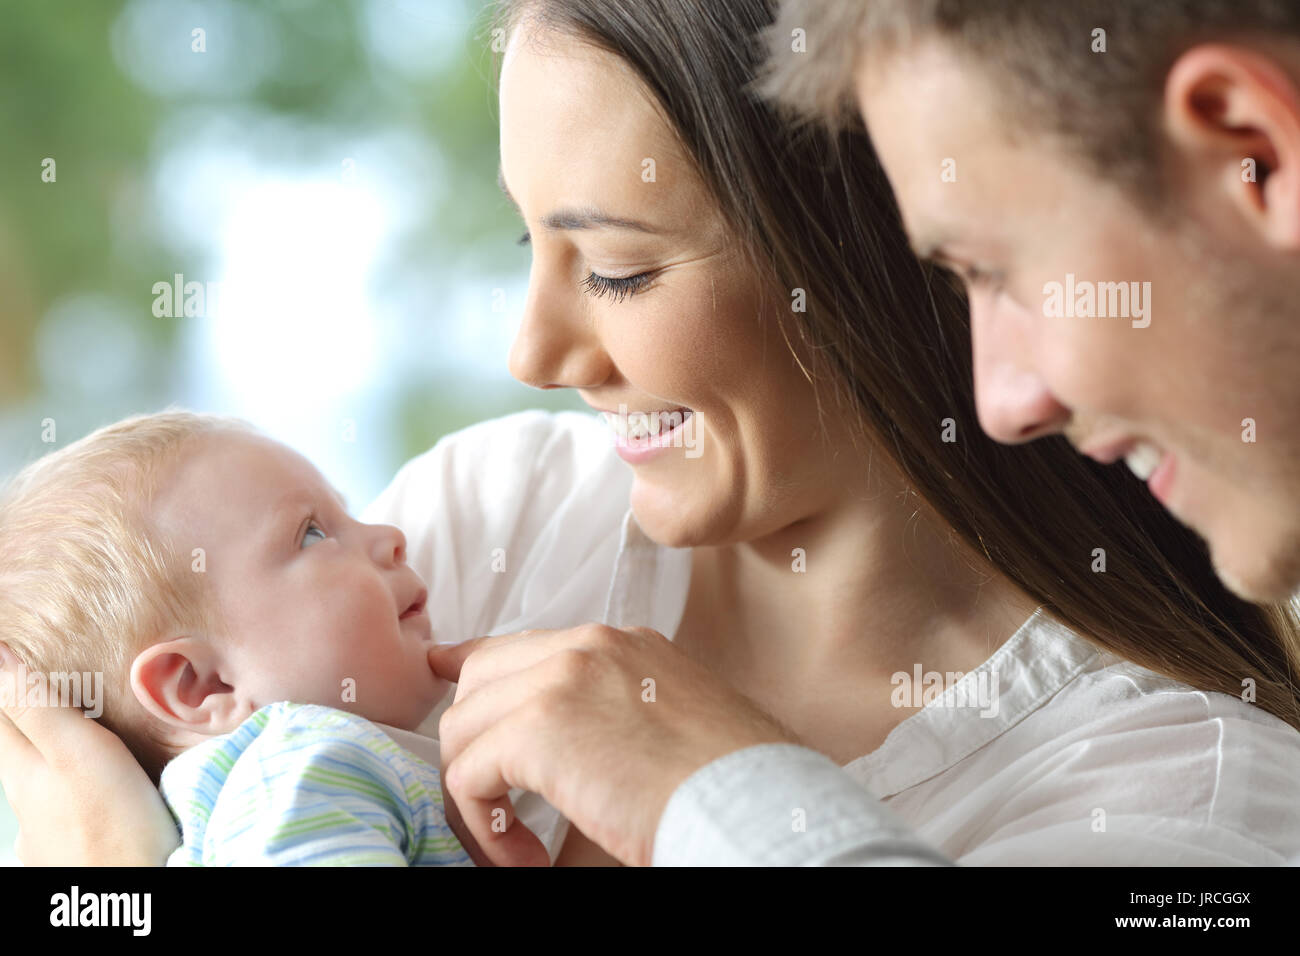 Proud parents holding their baby an looking him - Stock Image